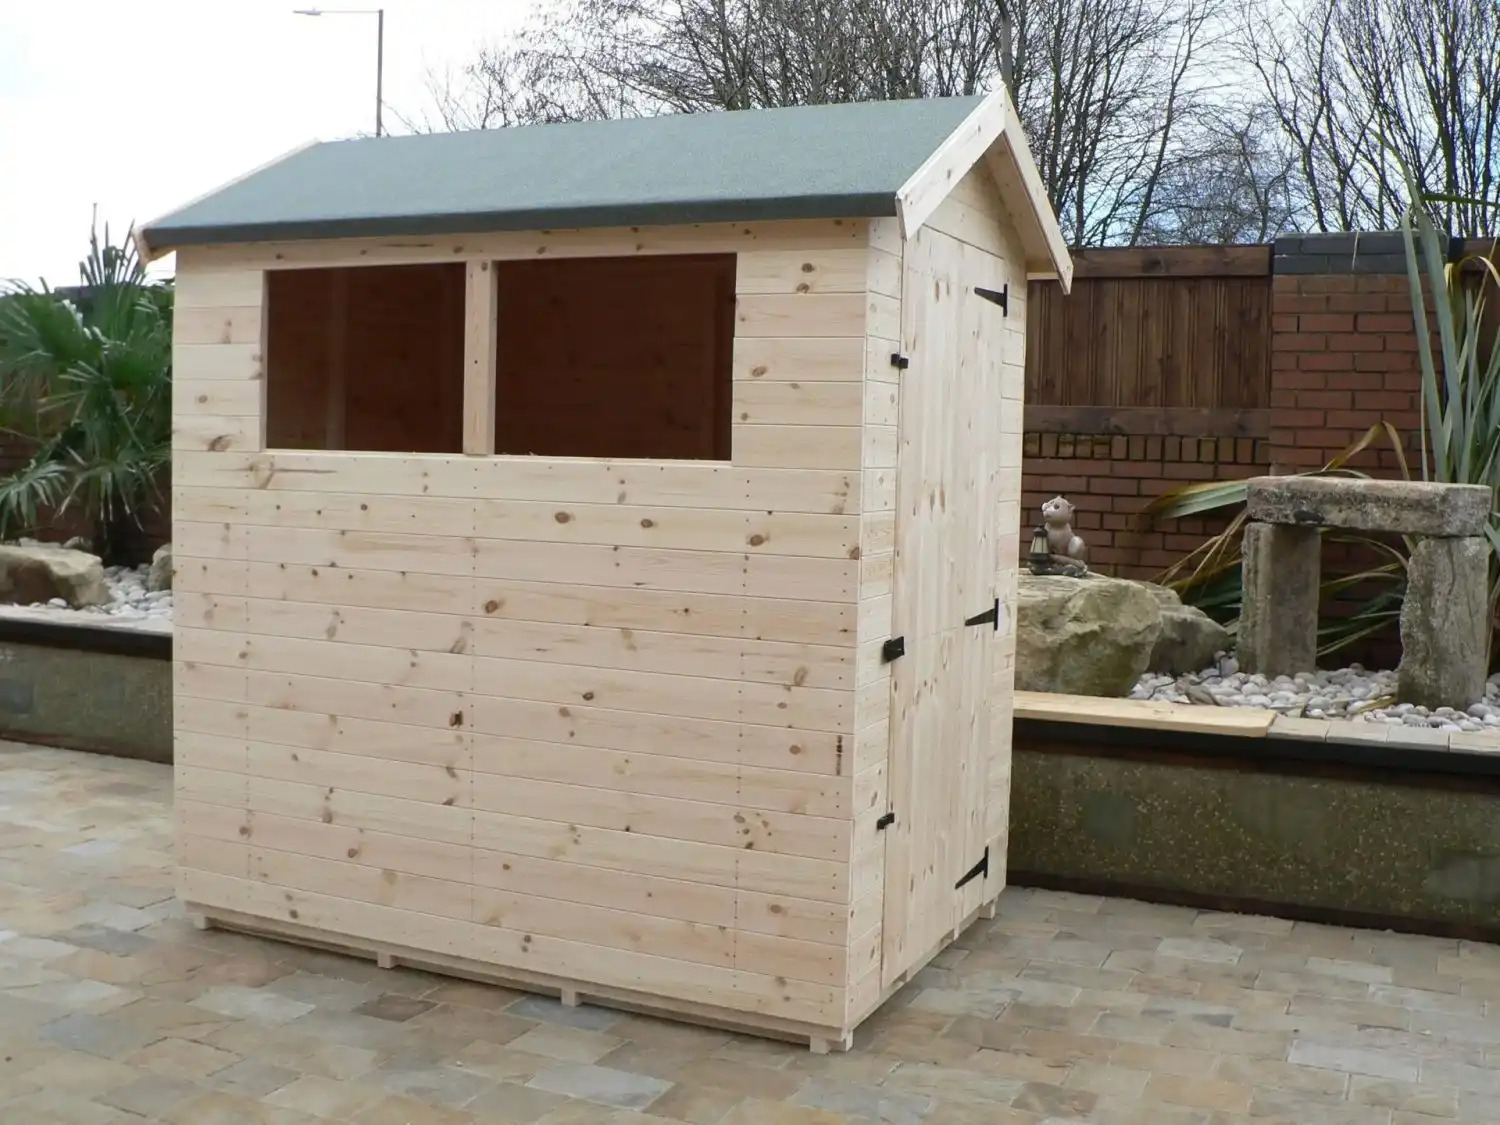 6' X 4' Apex Shed Full Size Windows